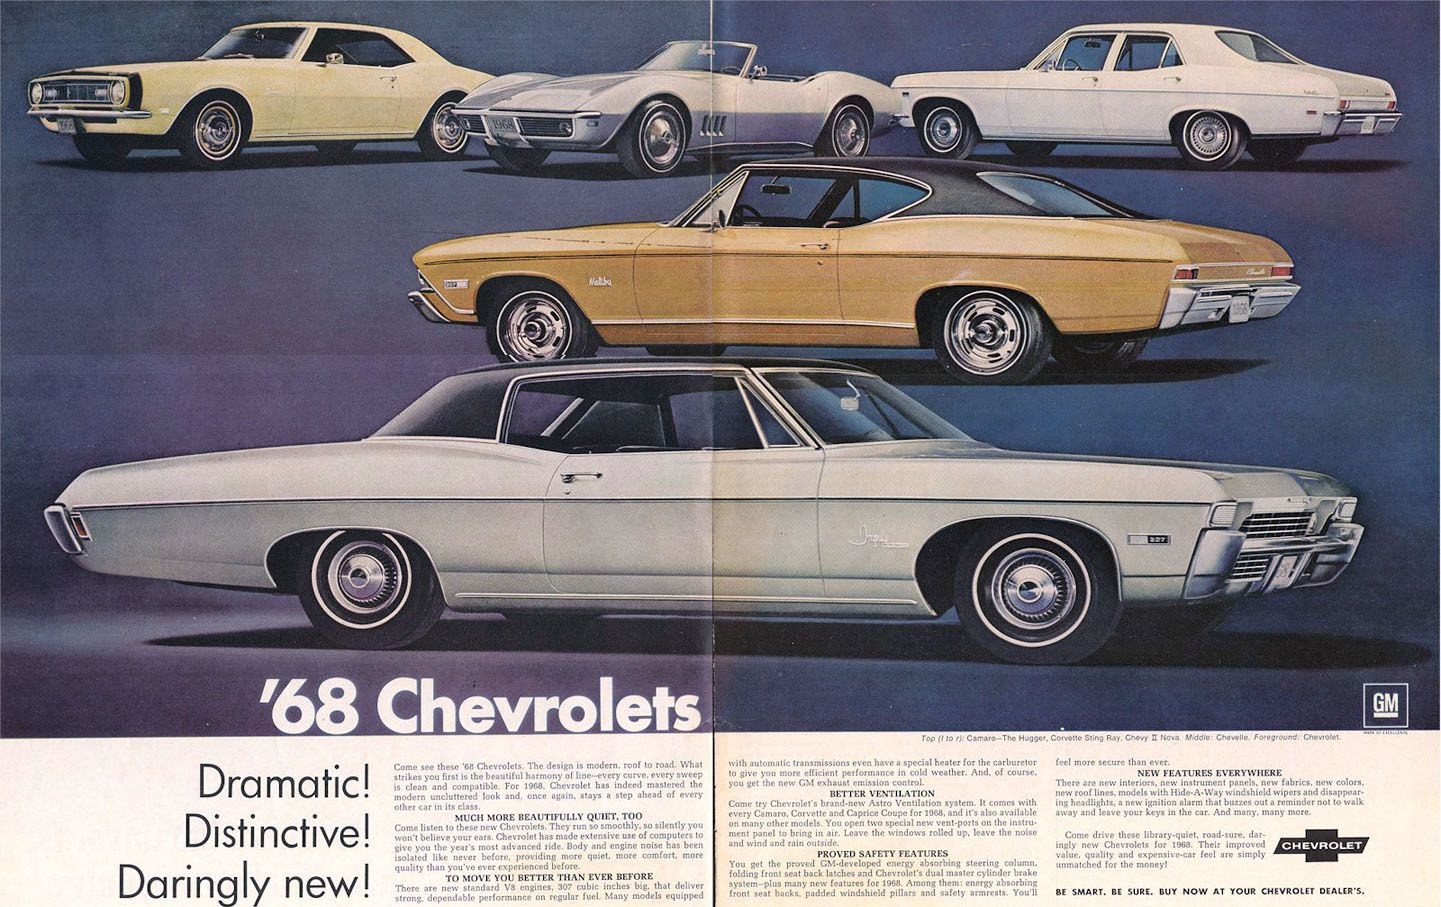 1968 Chevrolet Ad 01 Chevrolet Chevy Automobile Advertising